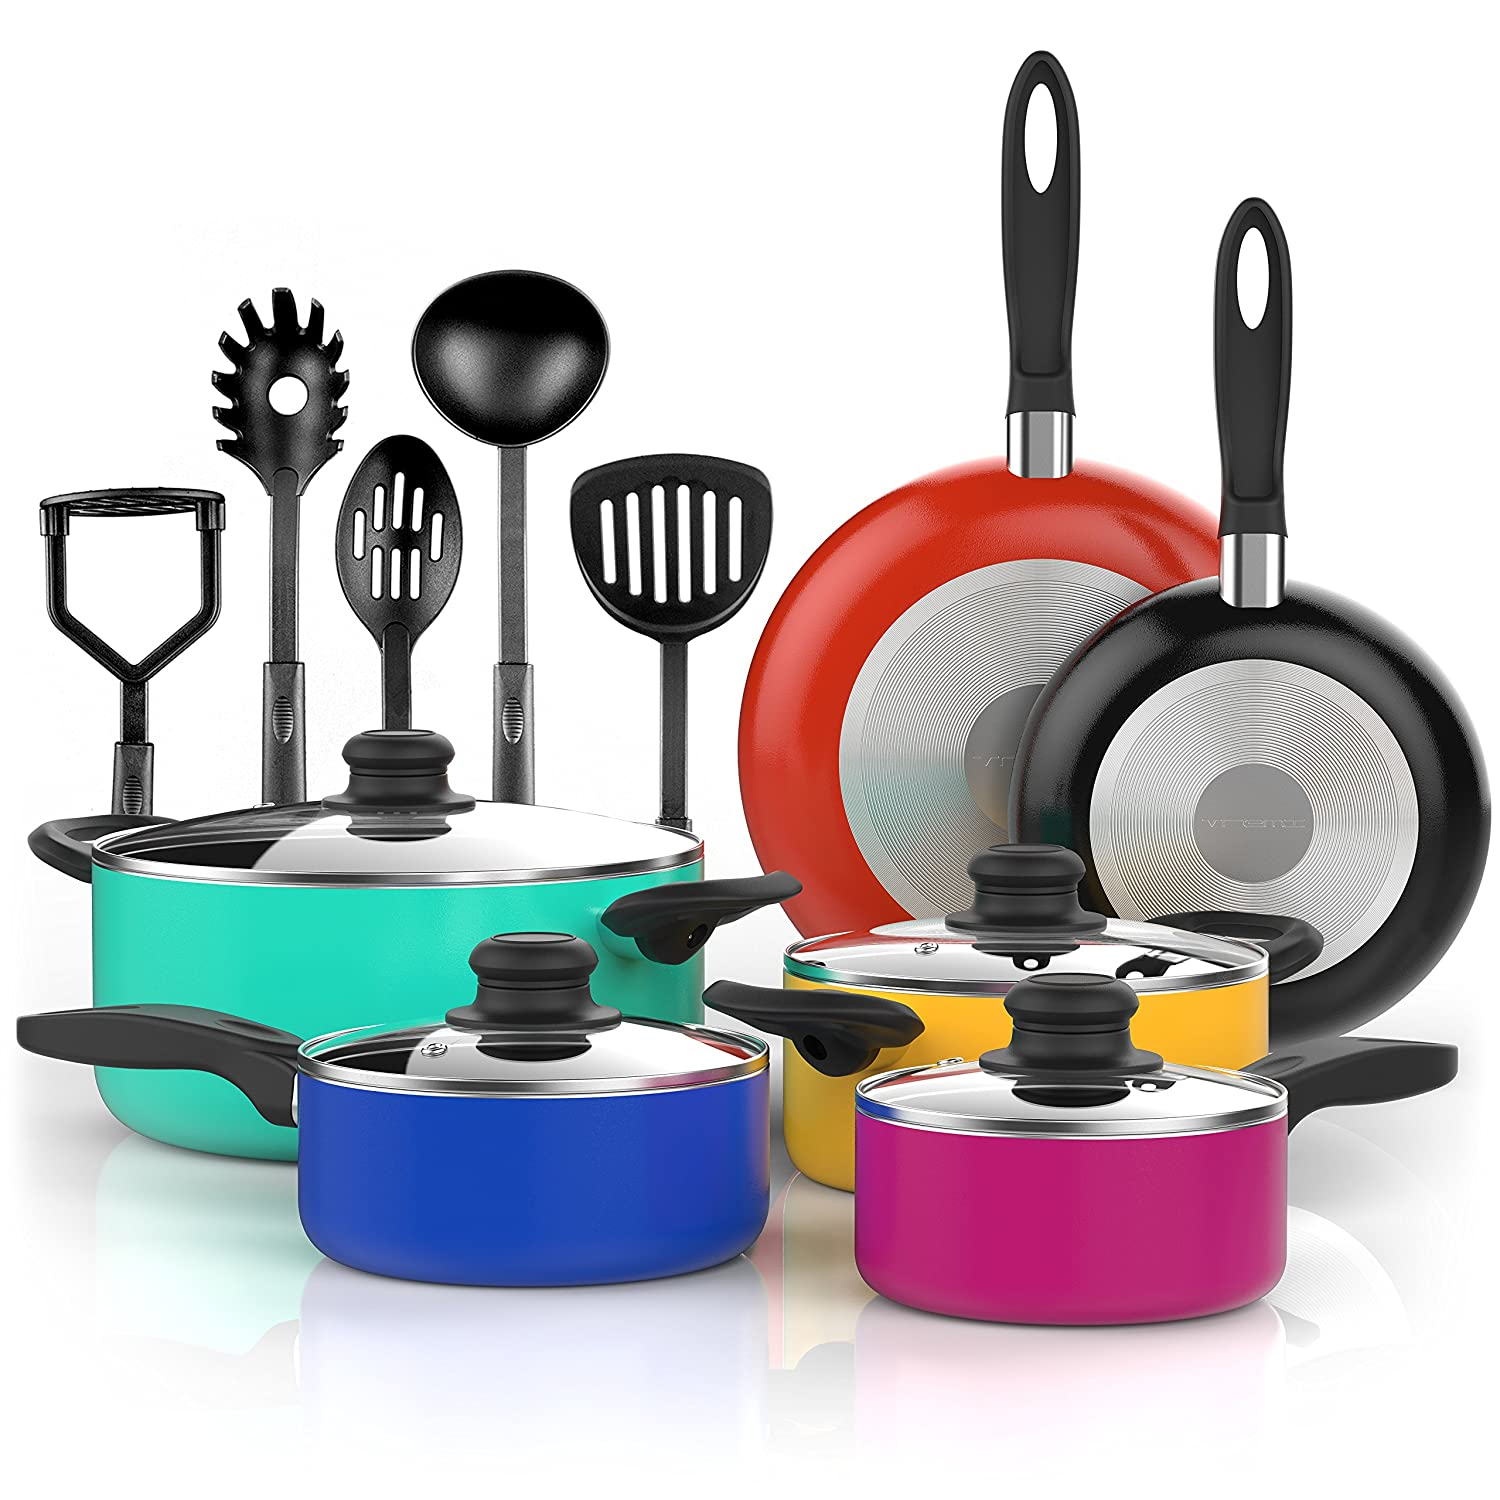 Vremi 15 Piece Nonstick Cookware Set - Colored Kitchen Pots and Pans Set Nonstick with Cooking Utensils